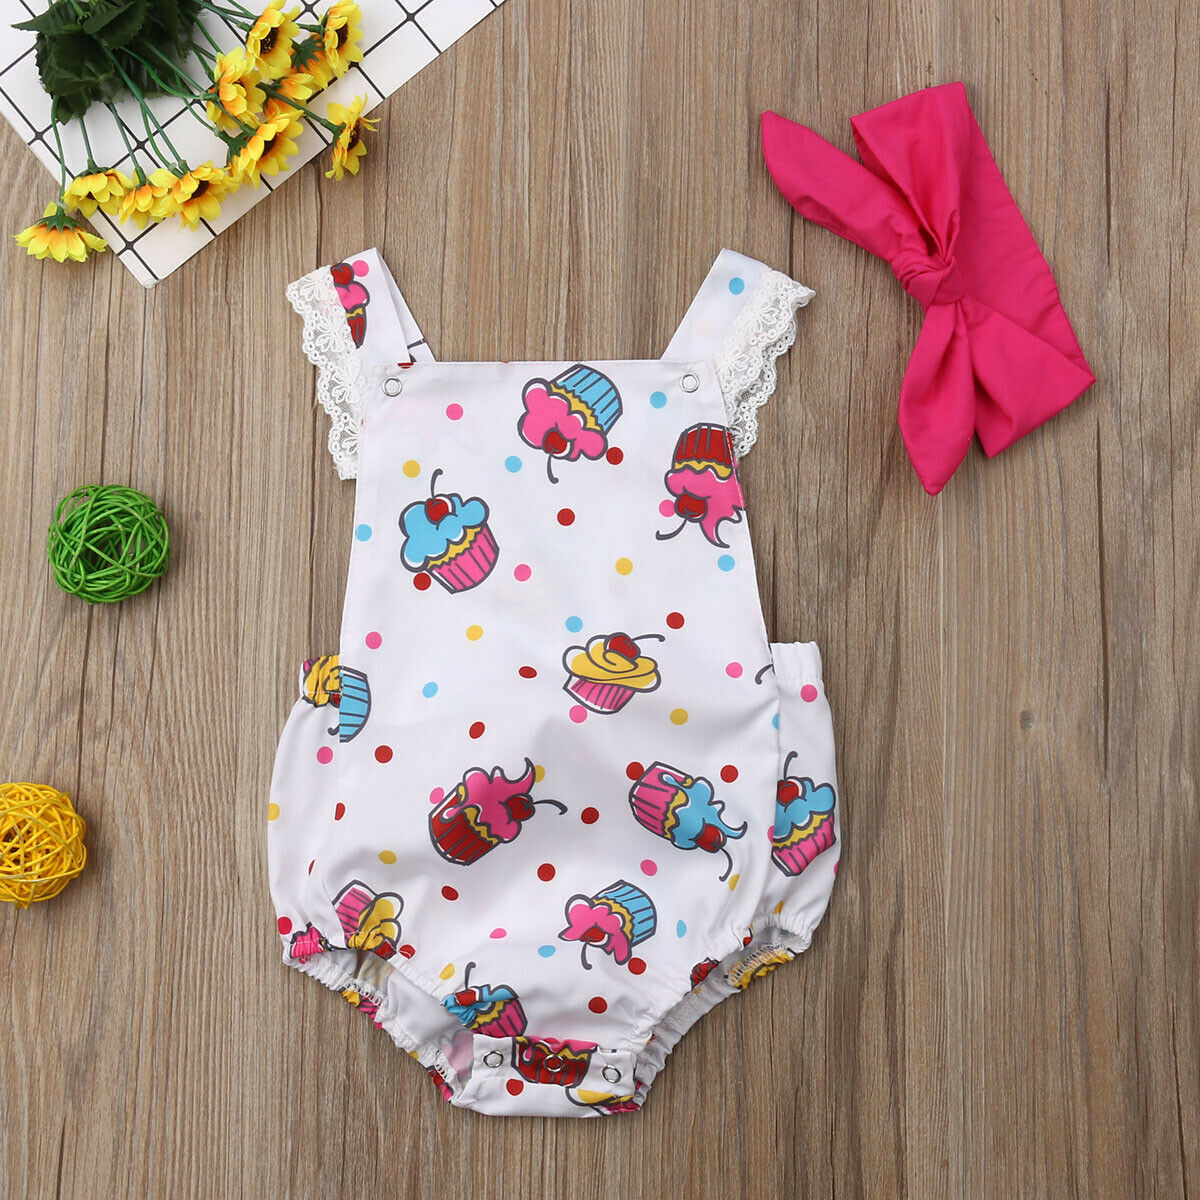 Emmababy 2019 Newborn Baby Girls Ice-cream  Bodysuit Jumpsuit Summer Clothes Outfits